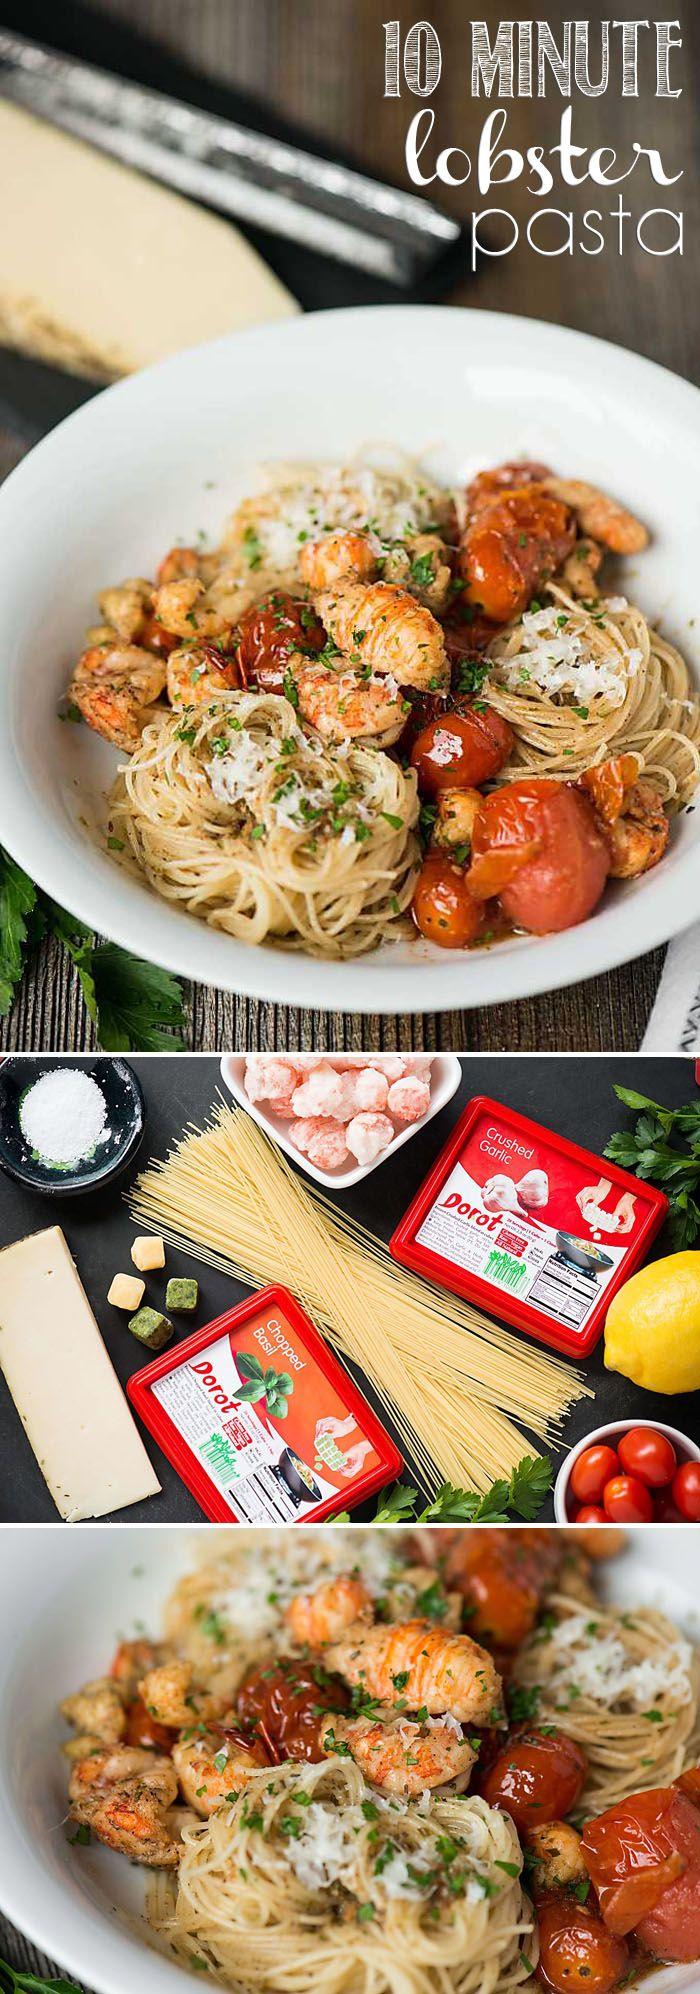 Perfect for a quick lunch or dinner, this single serving 10 Minute Lobster Pasta with tomatoes, basil and garlic is absolutely delicious.